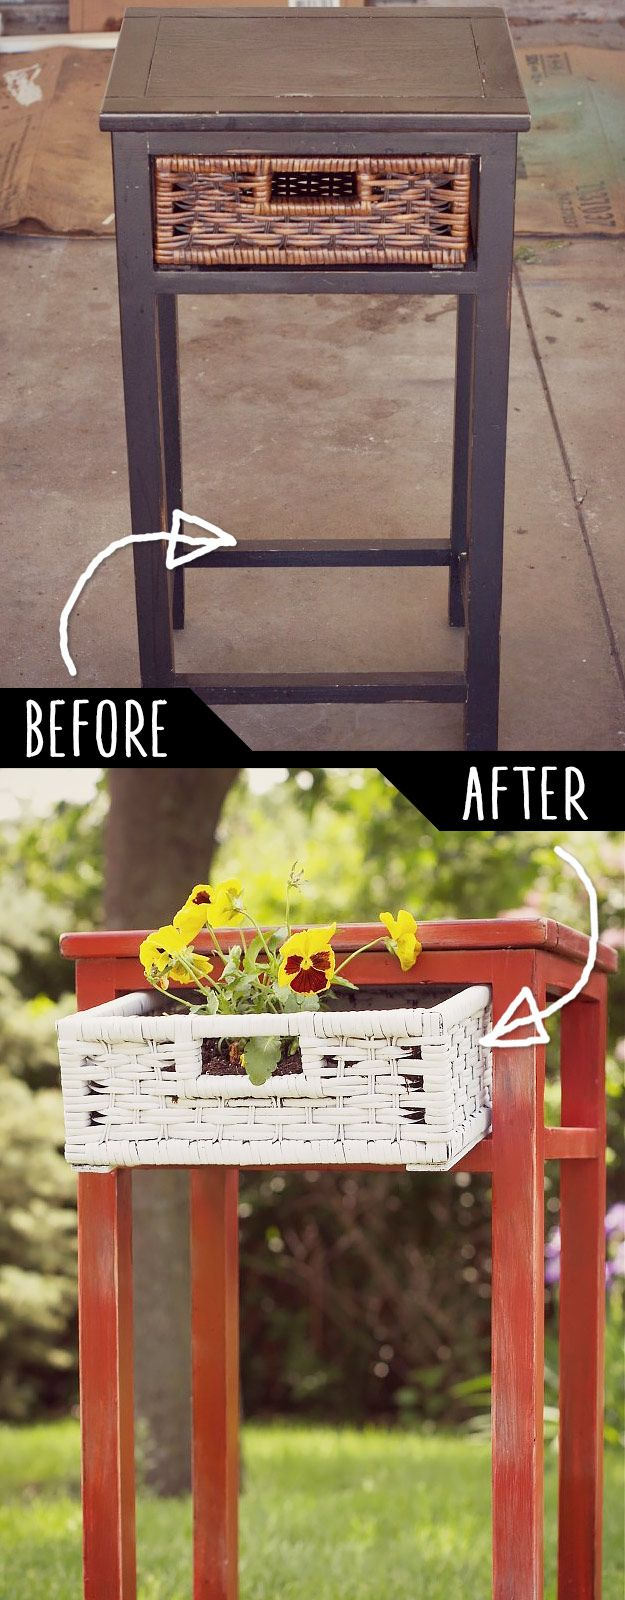 DIY Furniture Hacks |  Upcycled Side Table into Planter  | Cool Ideas for Creative Do It Yourself Furniture Made From Things You Might Not Expect - http://diyjoy.com/diy-furniture-hacks